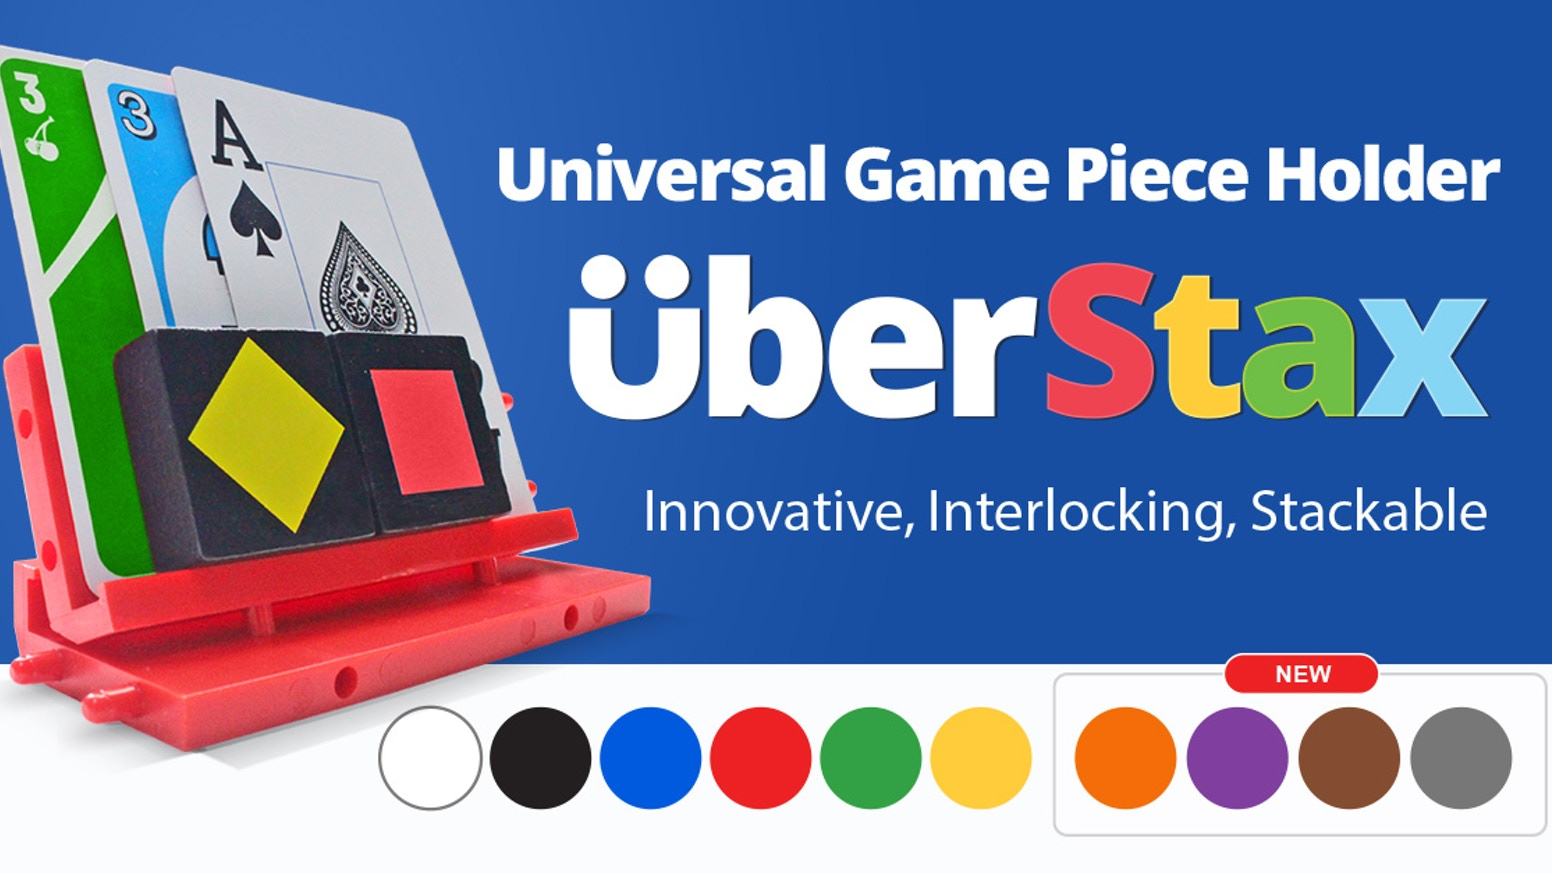 Match your player colors and more stacking fun with #UberStax NEW COLORS for a better organized and easier to use gaming table!